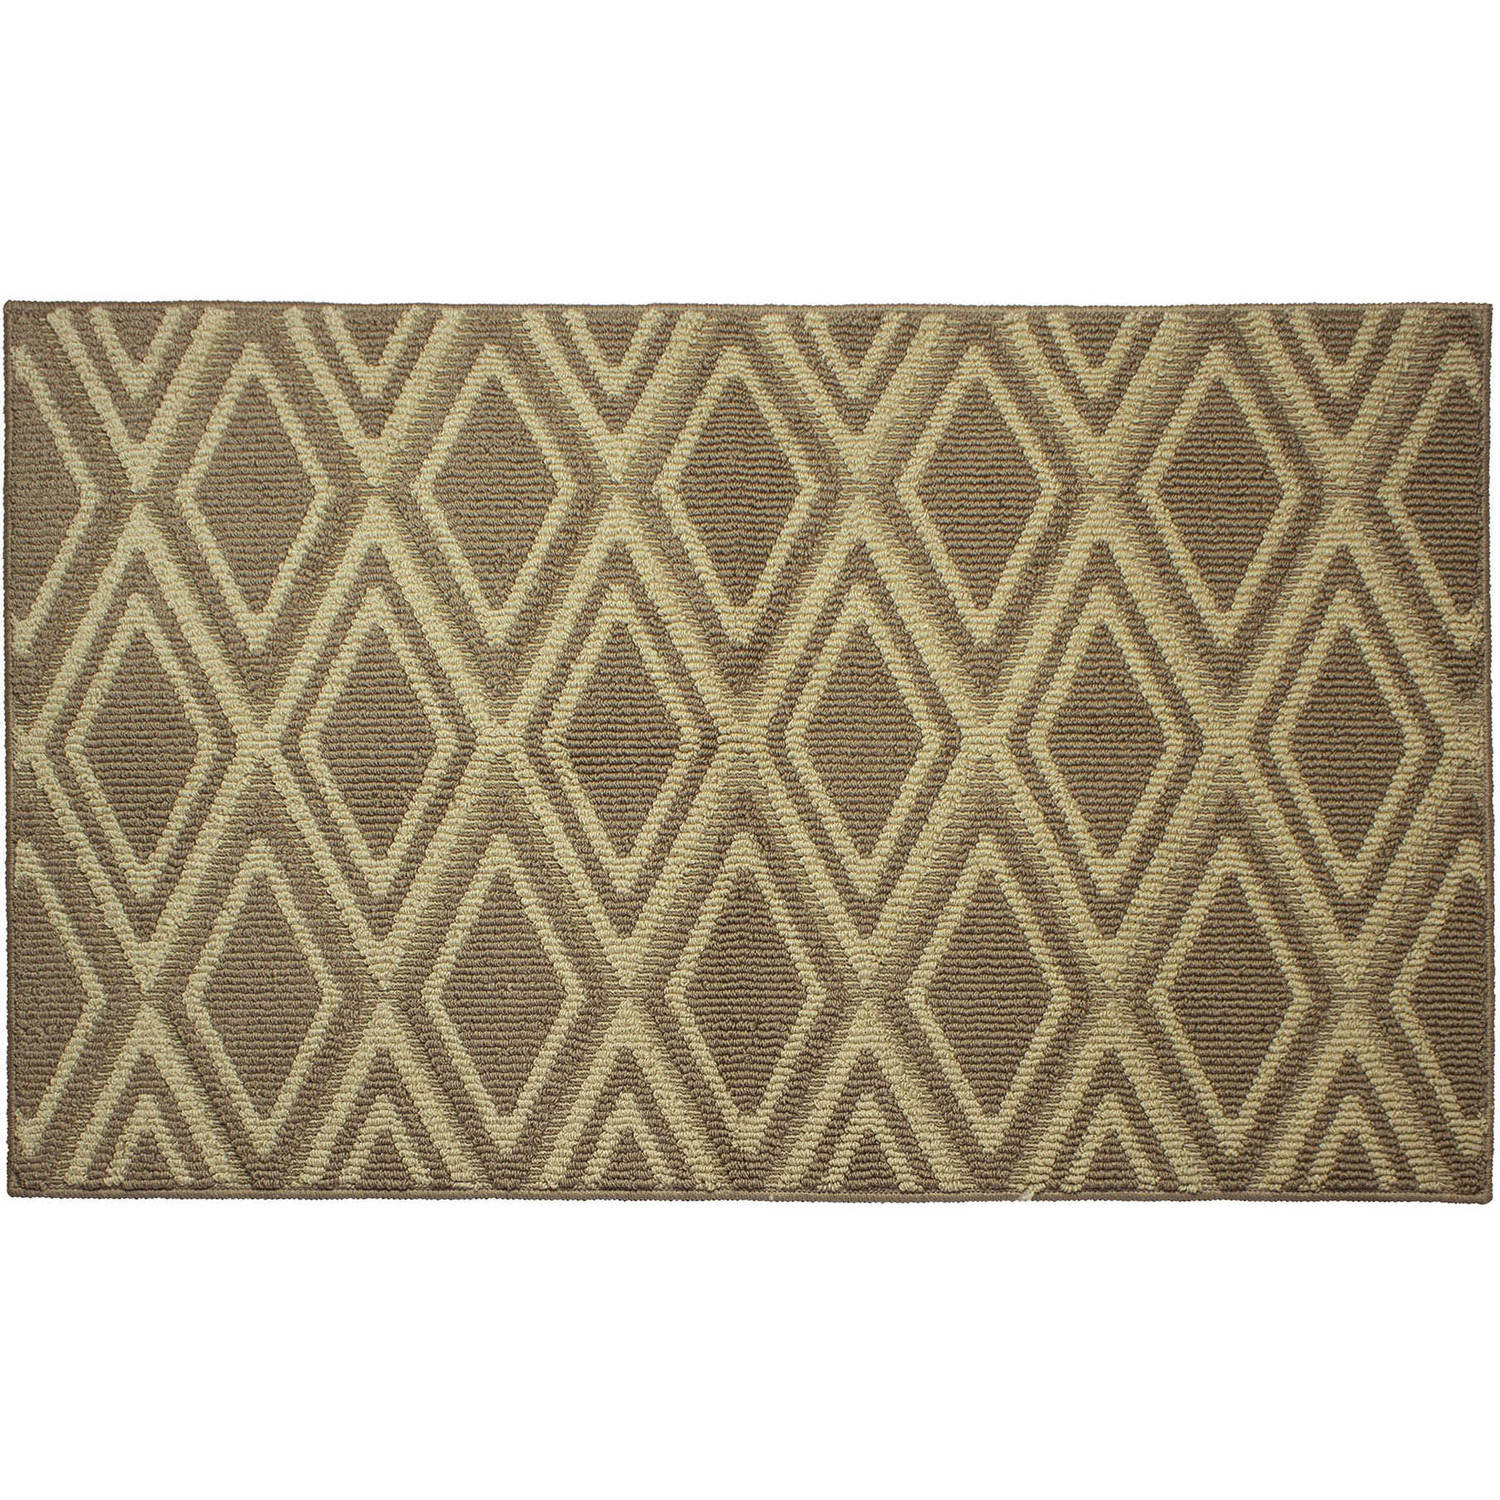 Jean Pierre All Loop Sean Decorative Textured Accent Rug by Generic